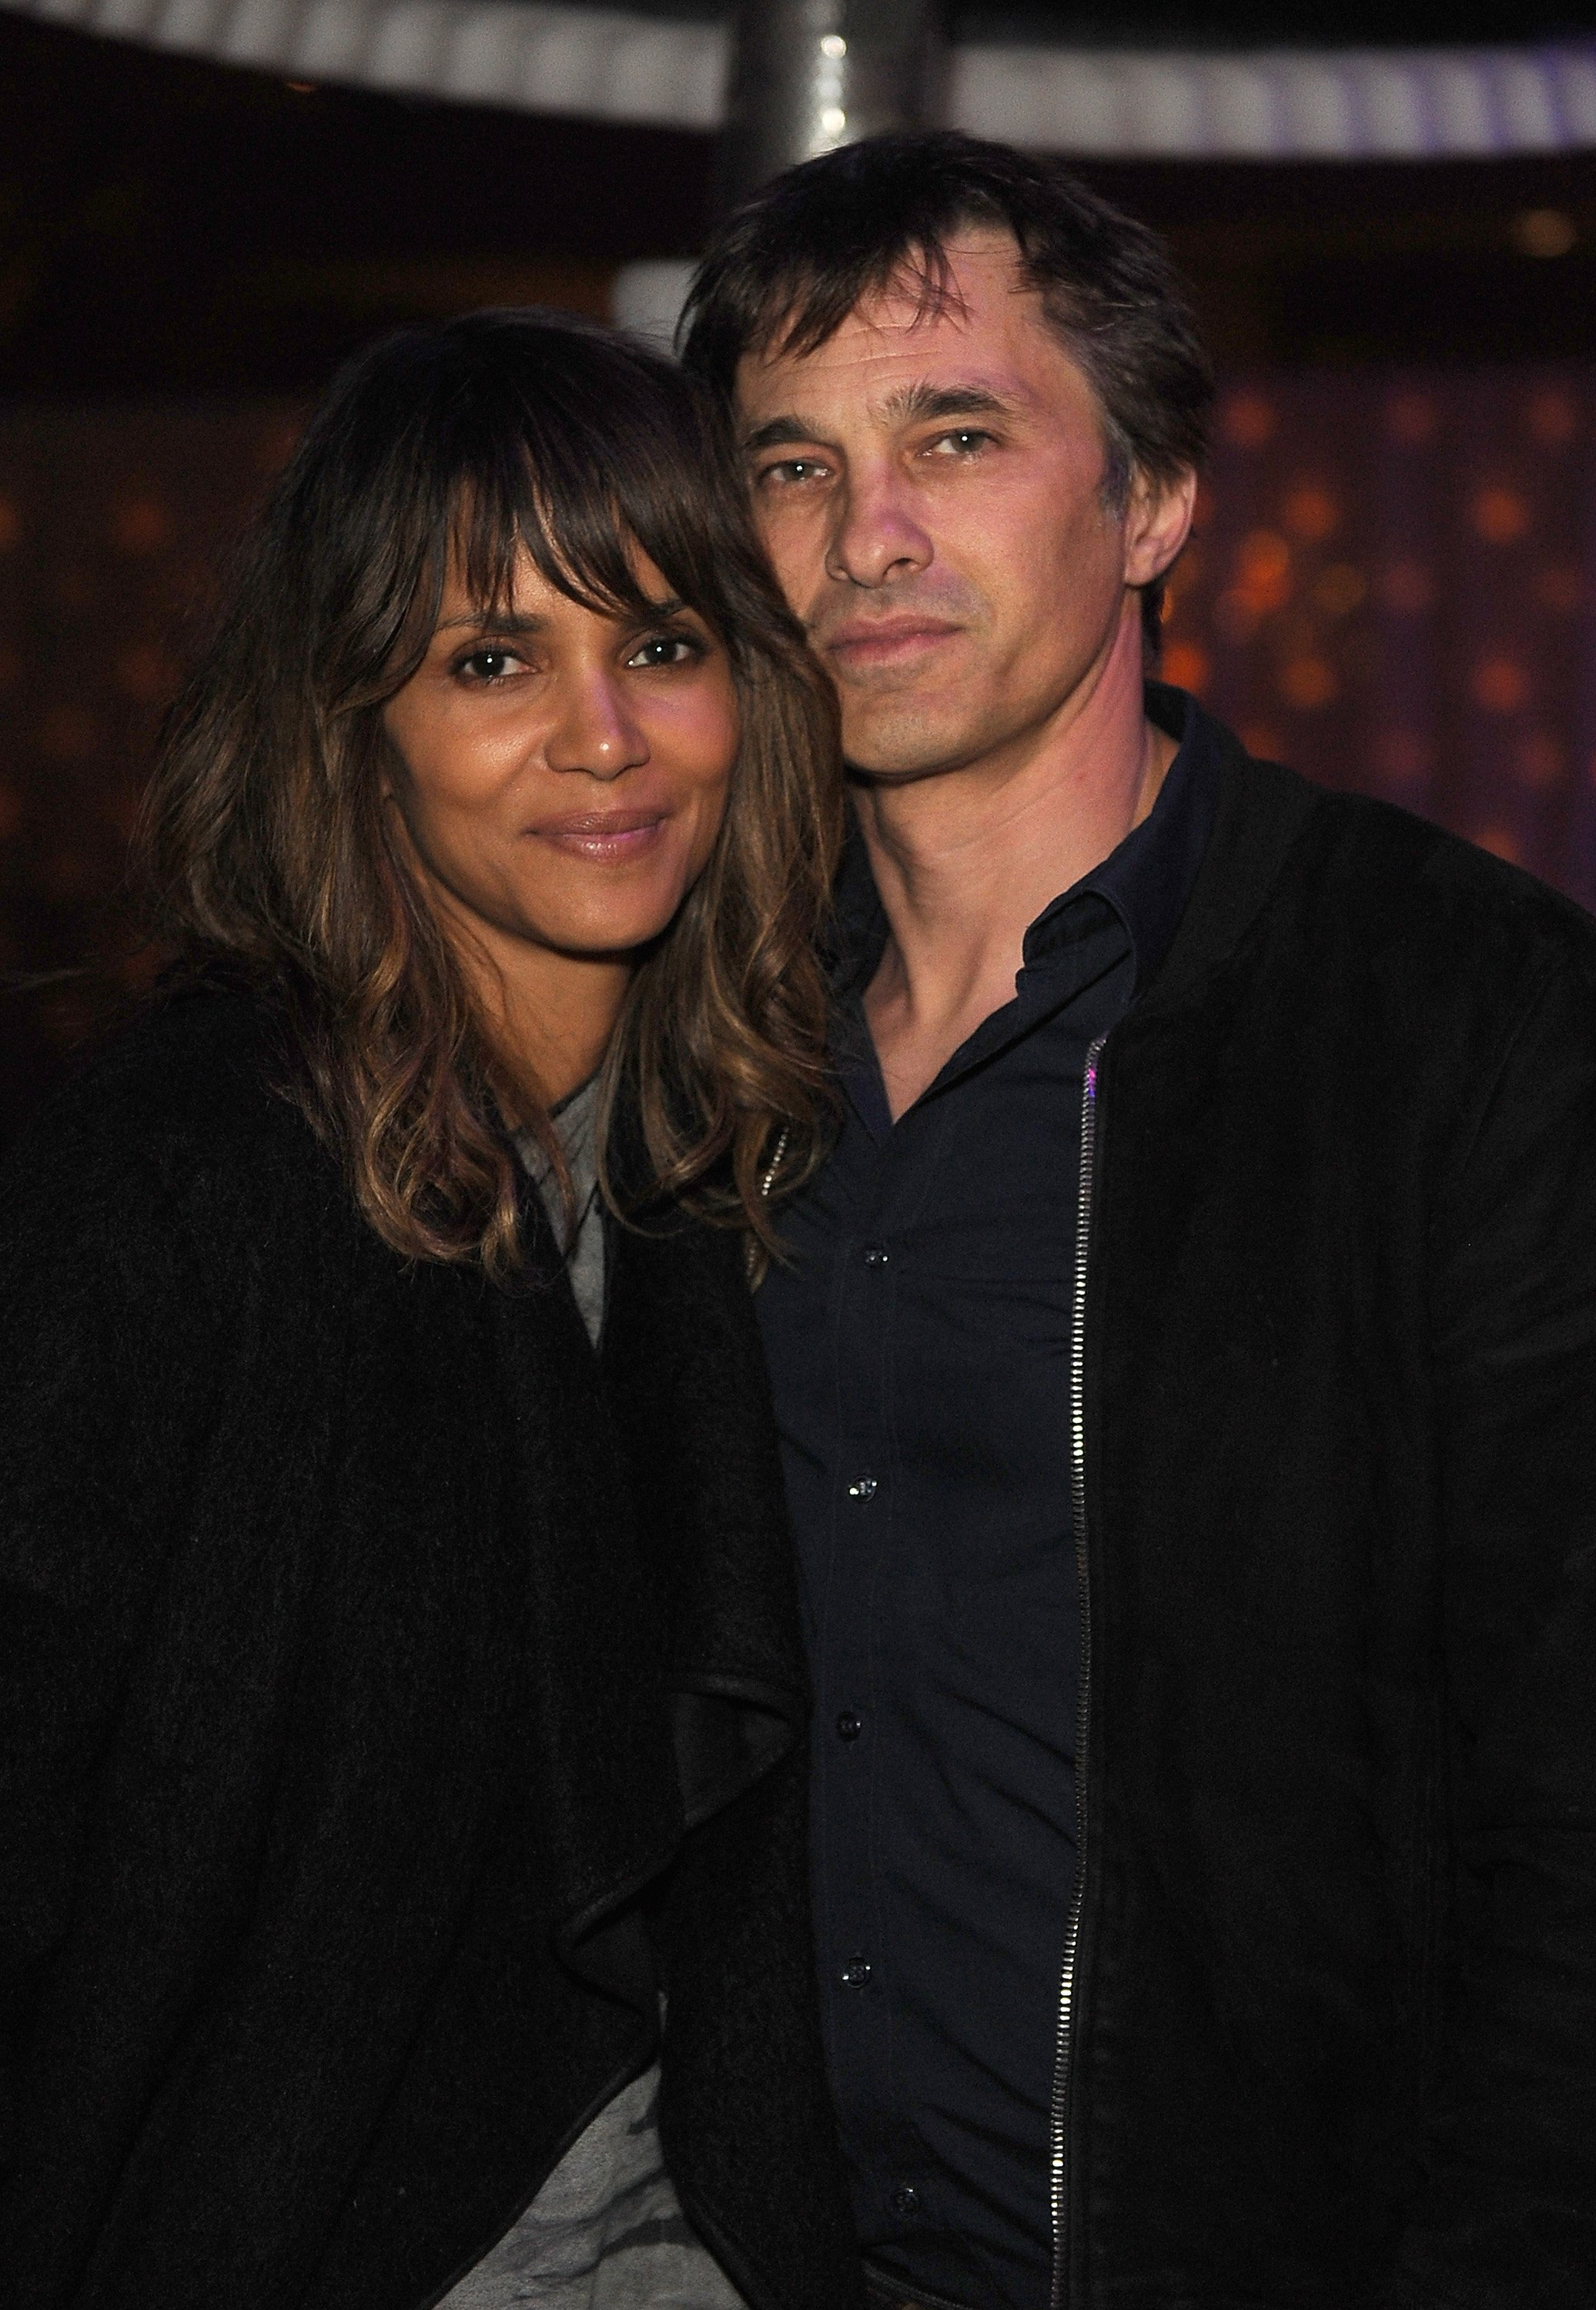 Halle Berry and Olivier Martinez attend the Treats! Magazine Pre-Oscar Party on February 21, 2015, in Los Angeles, California. | Source: Getty Images.